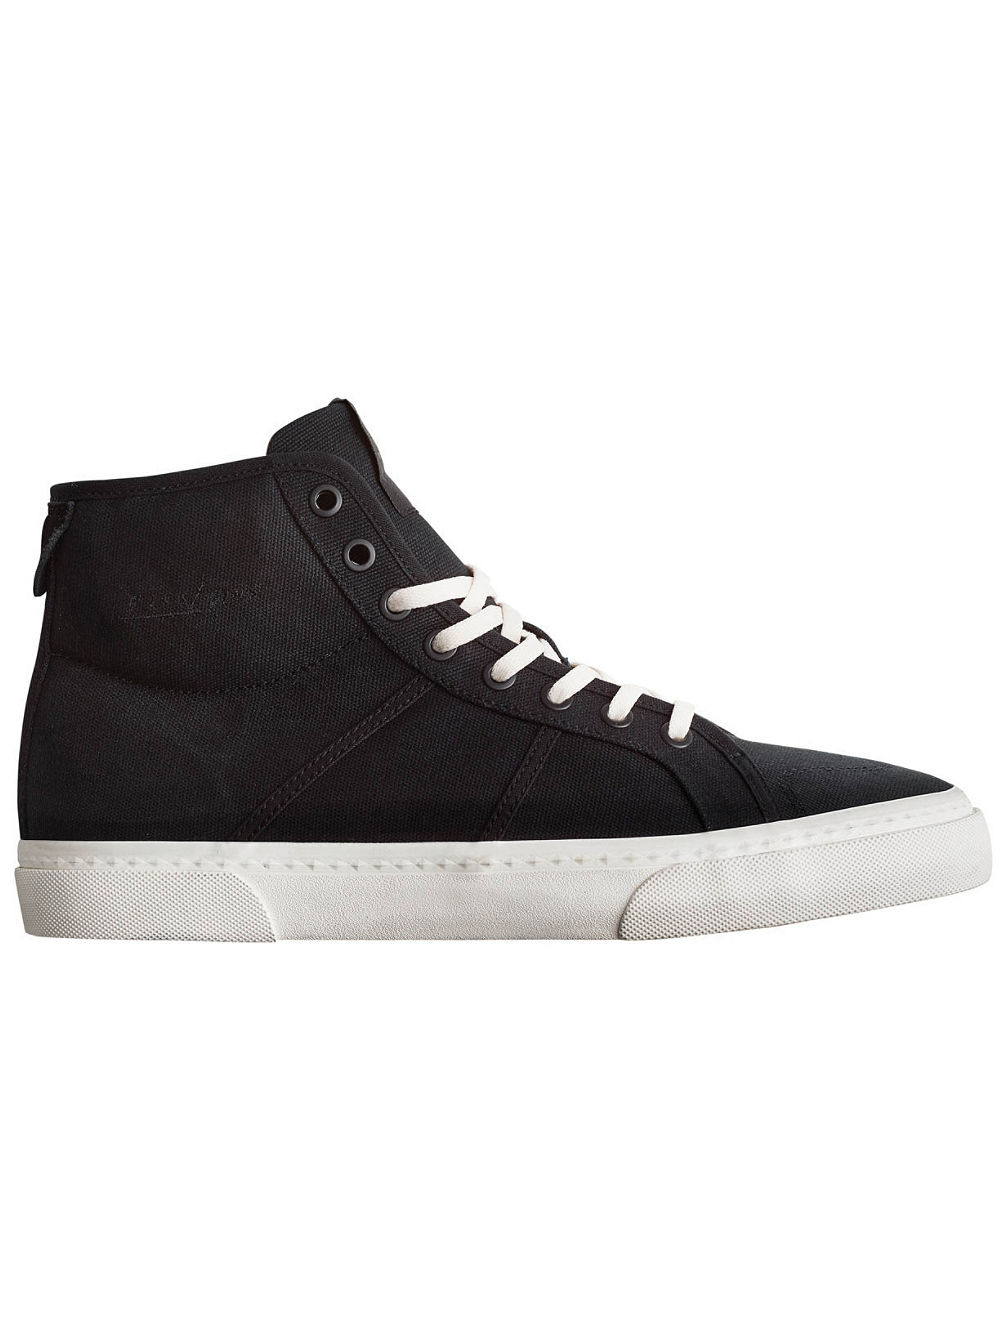 Los Angered II Sneakers